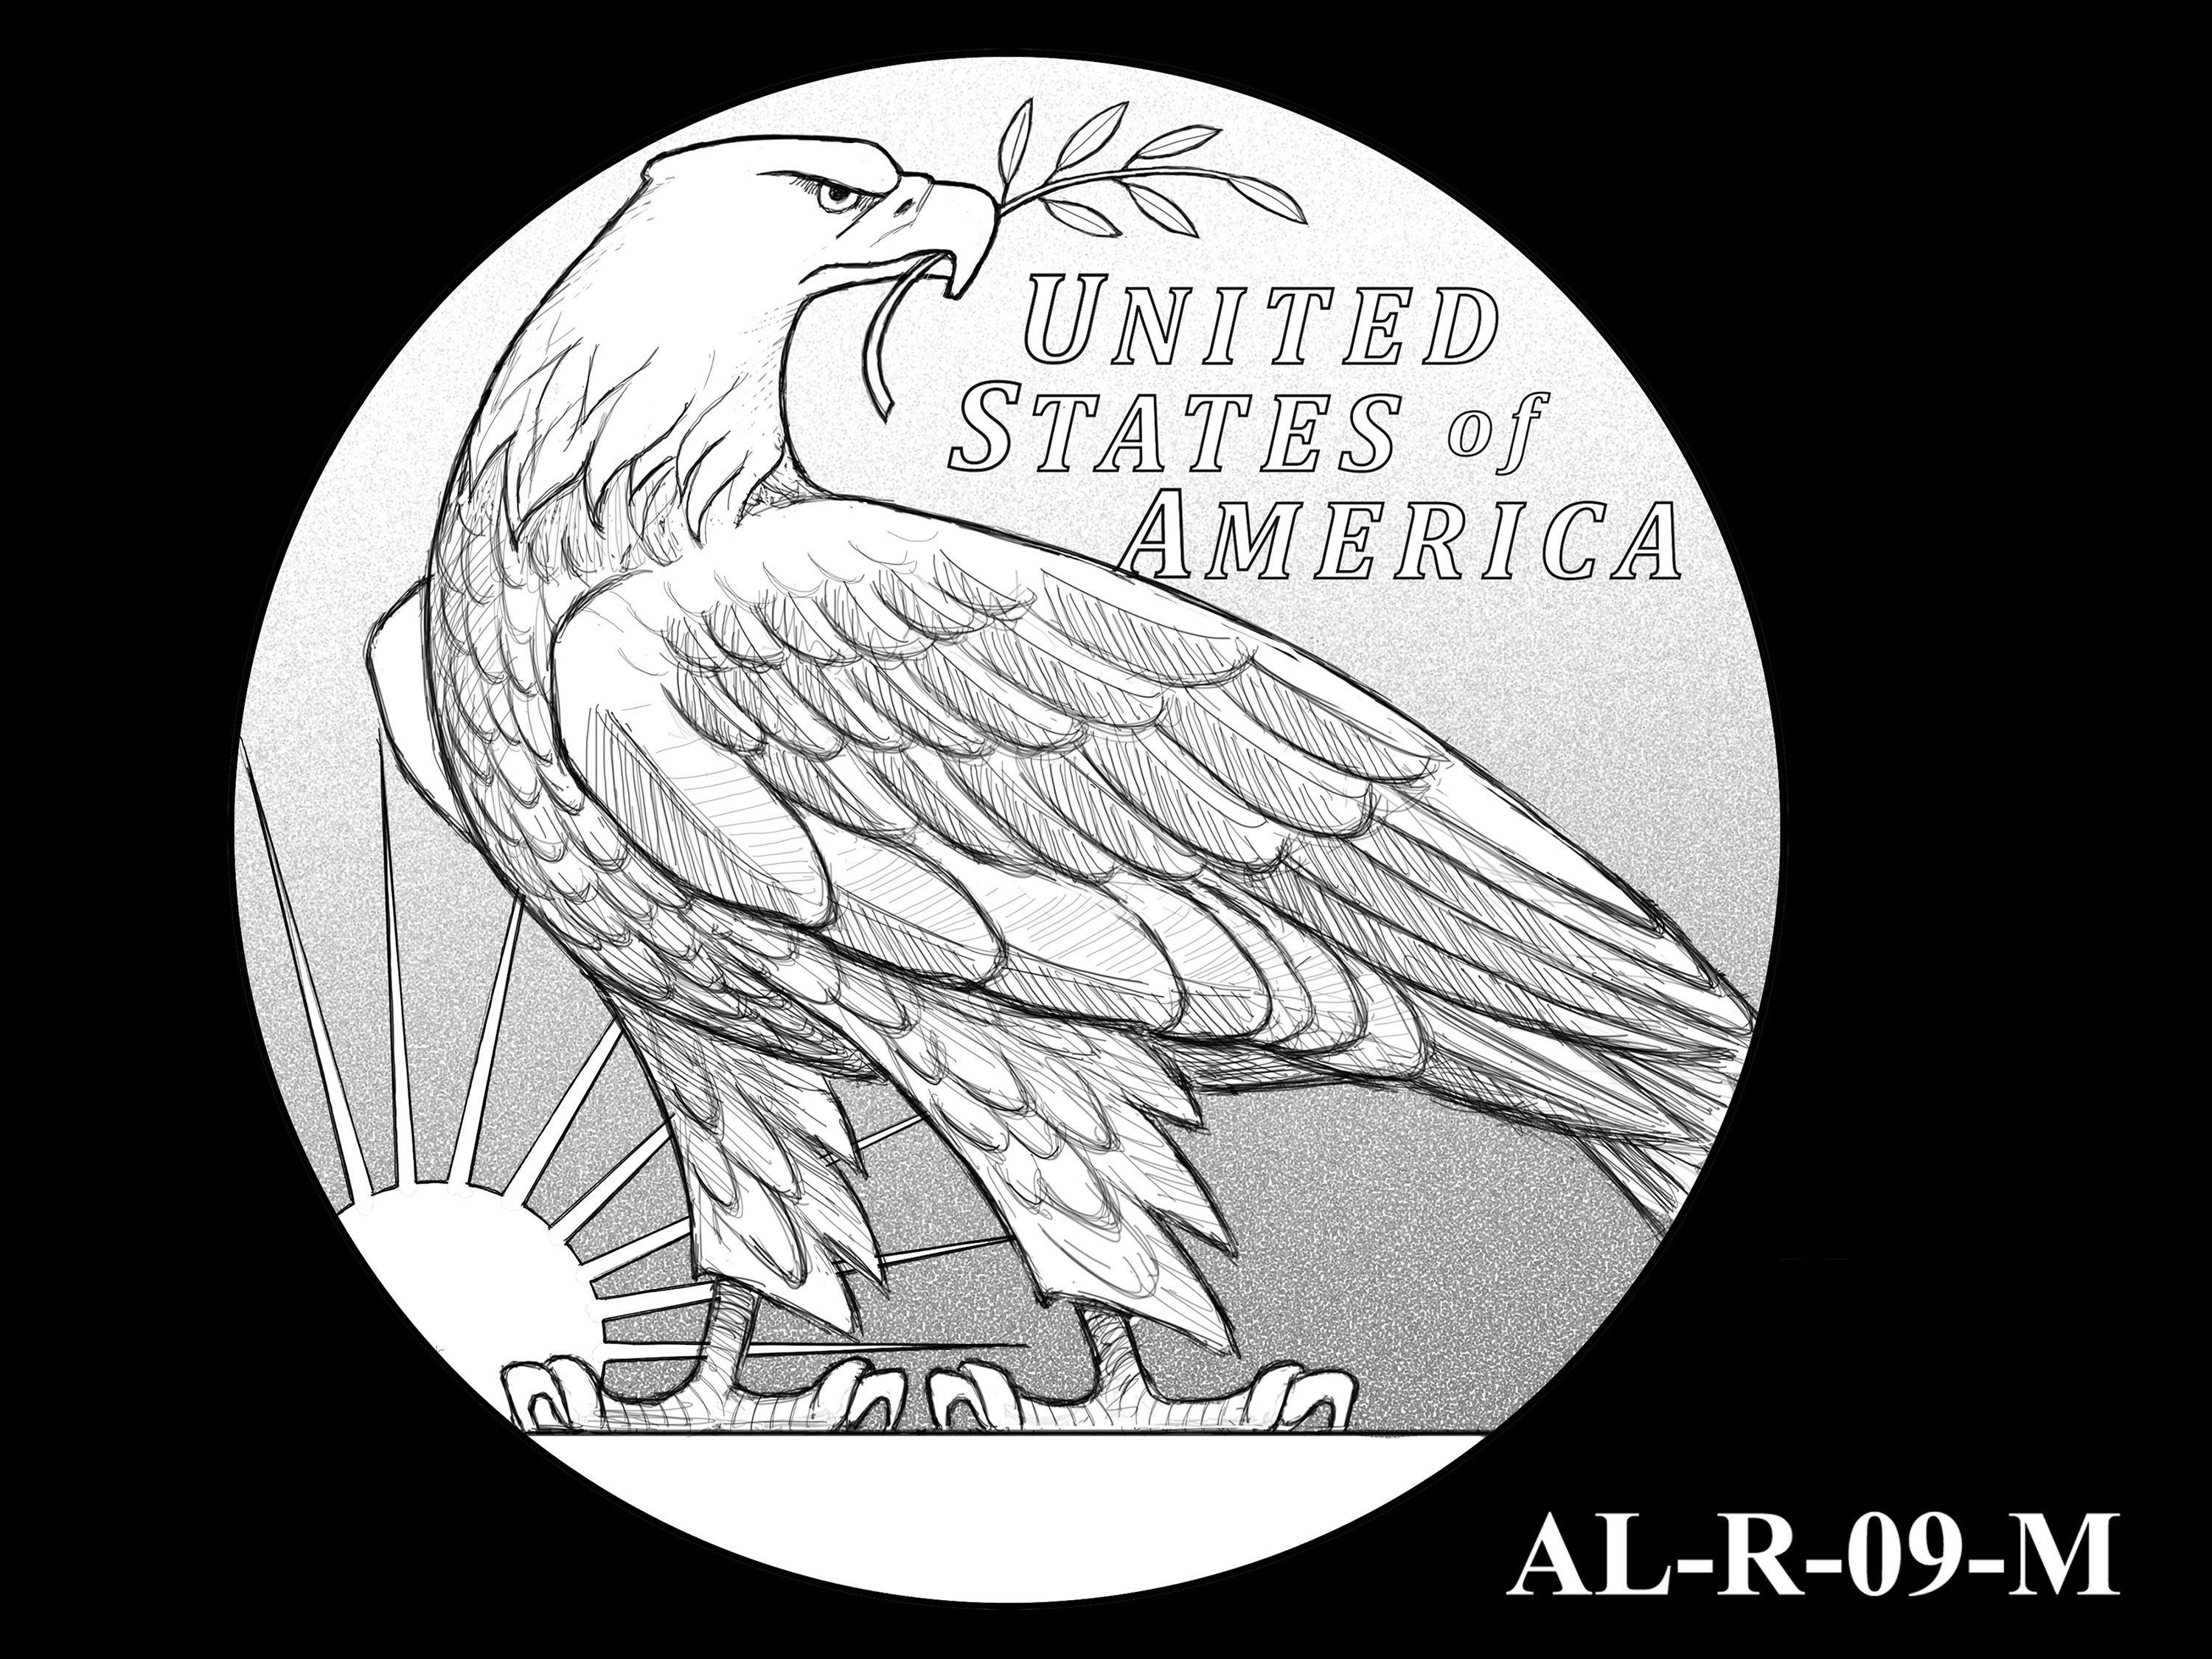 AL-R-09-M -- 2021 American Liberty Gold Coin and Silver Medal Program - Reverse